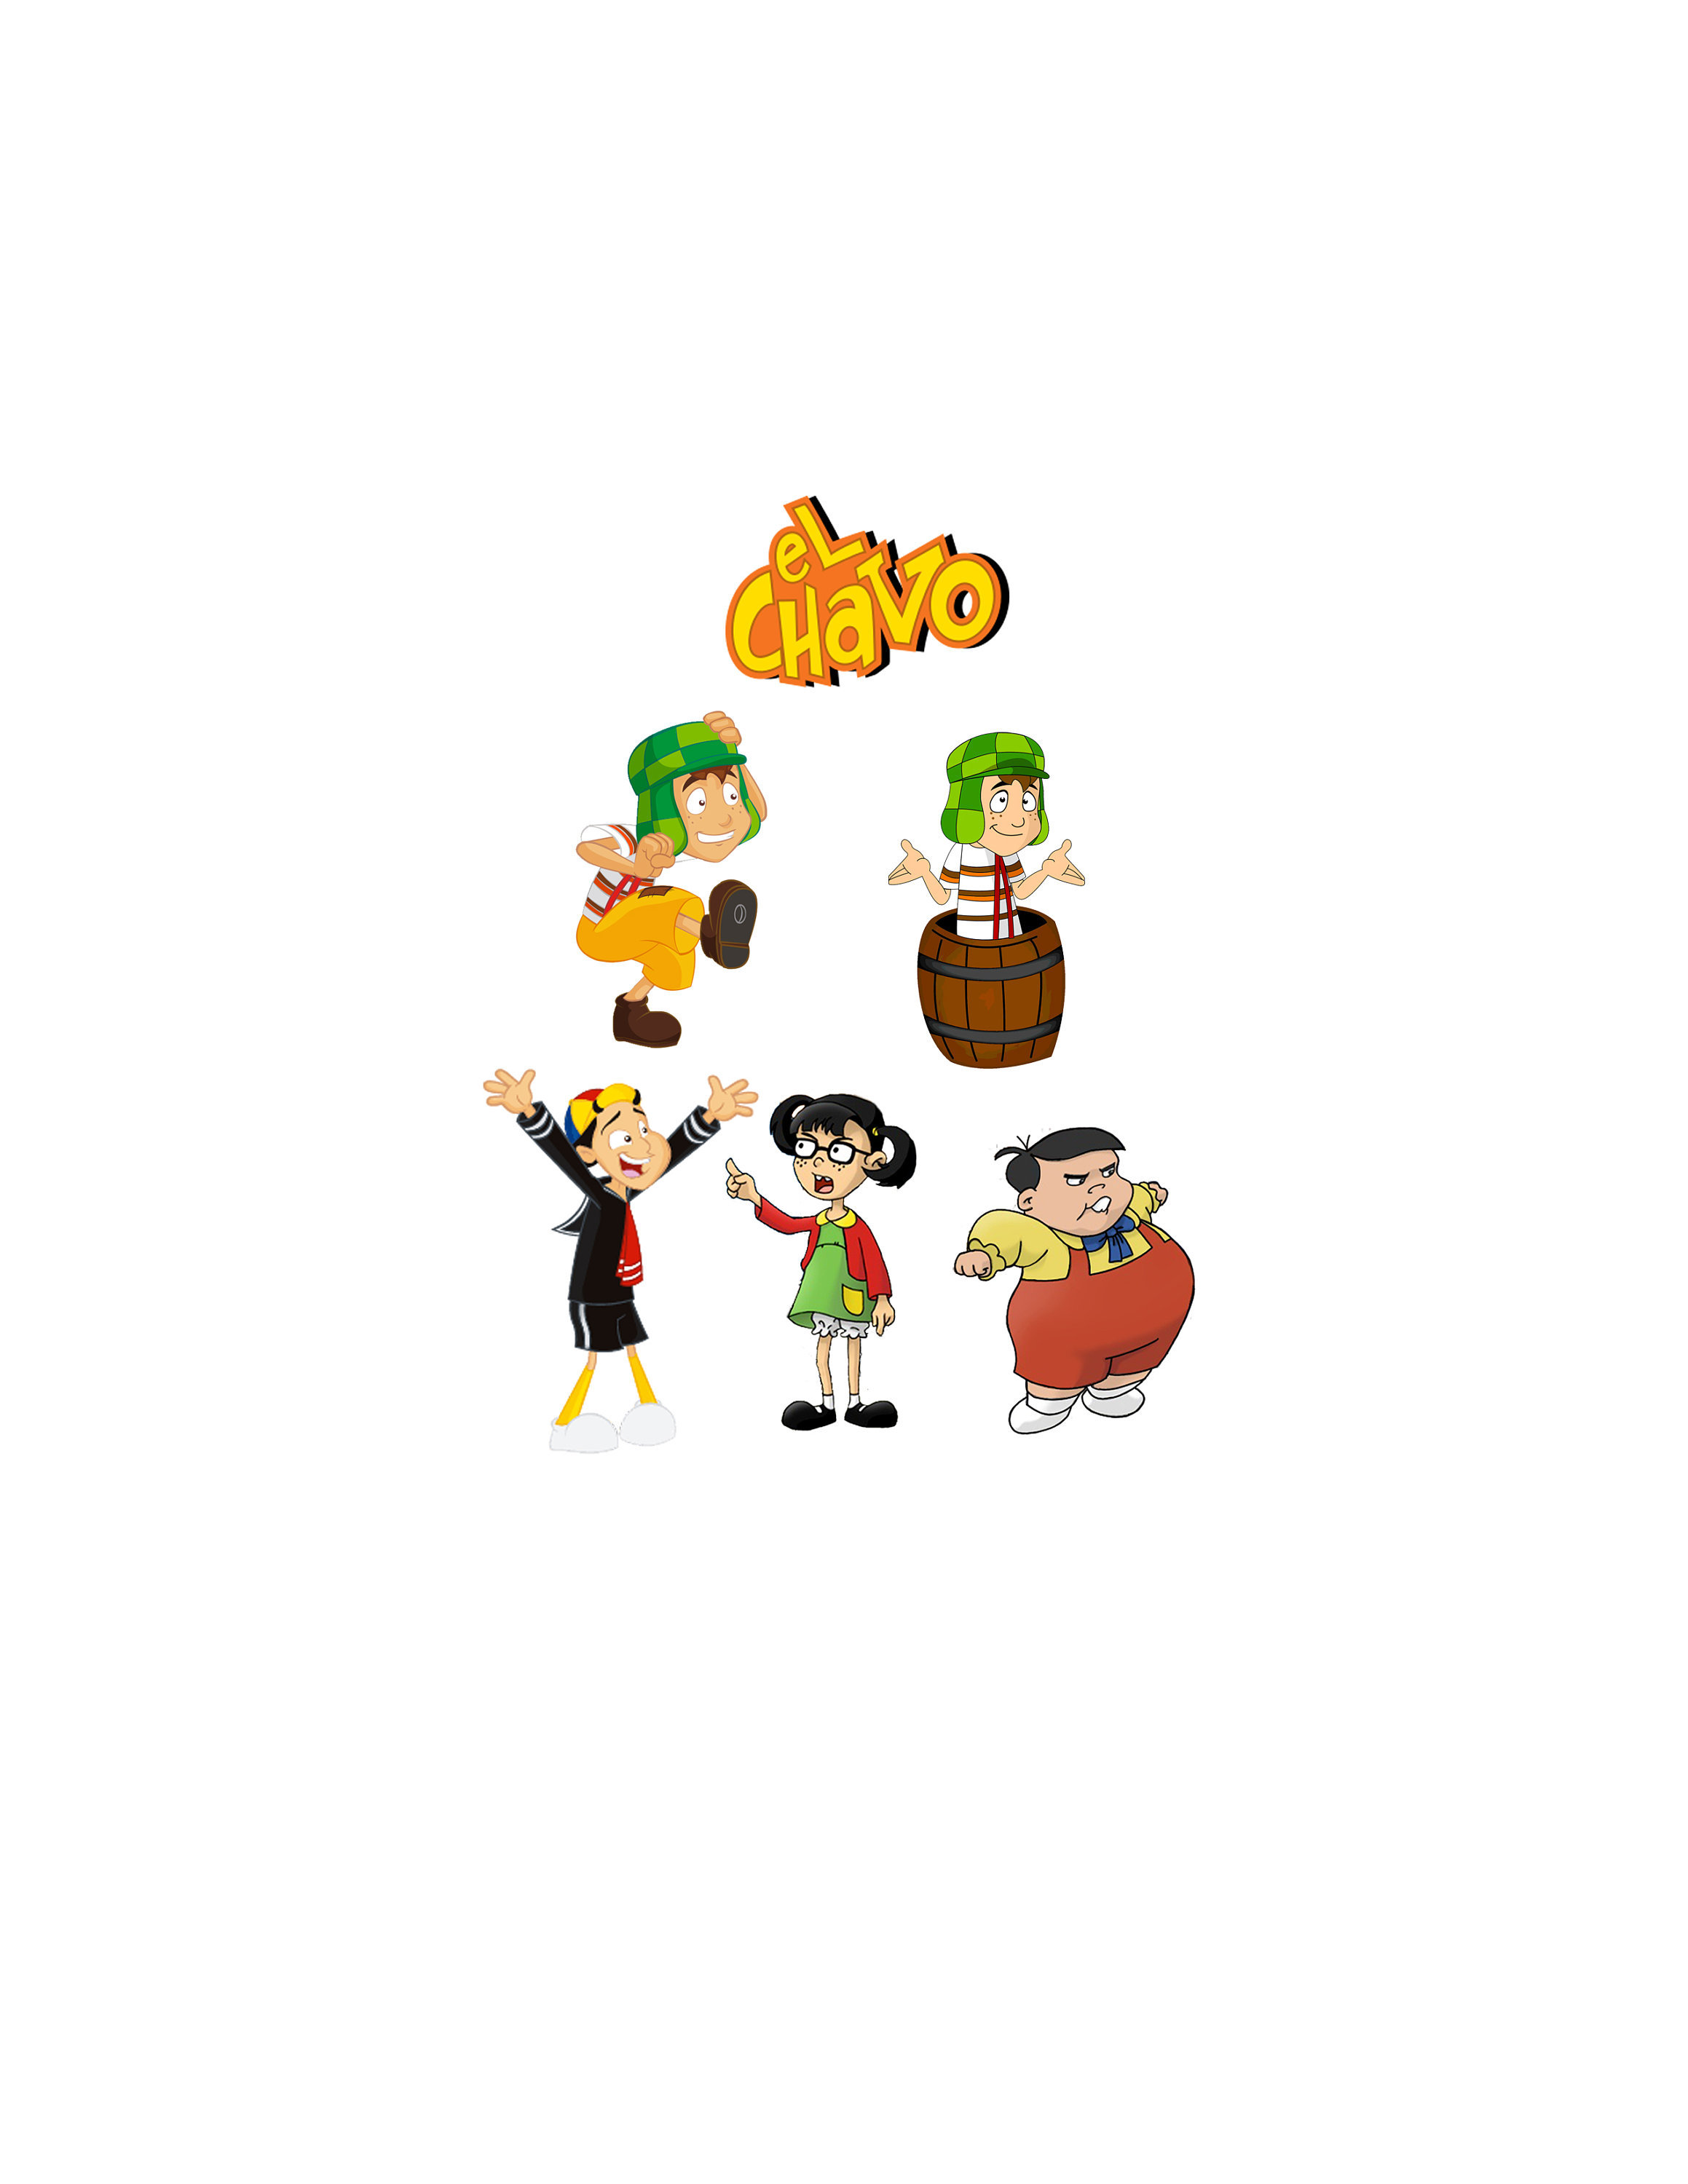 El Chavo Del Ocho Cricut Files, Png File, JPEG File.